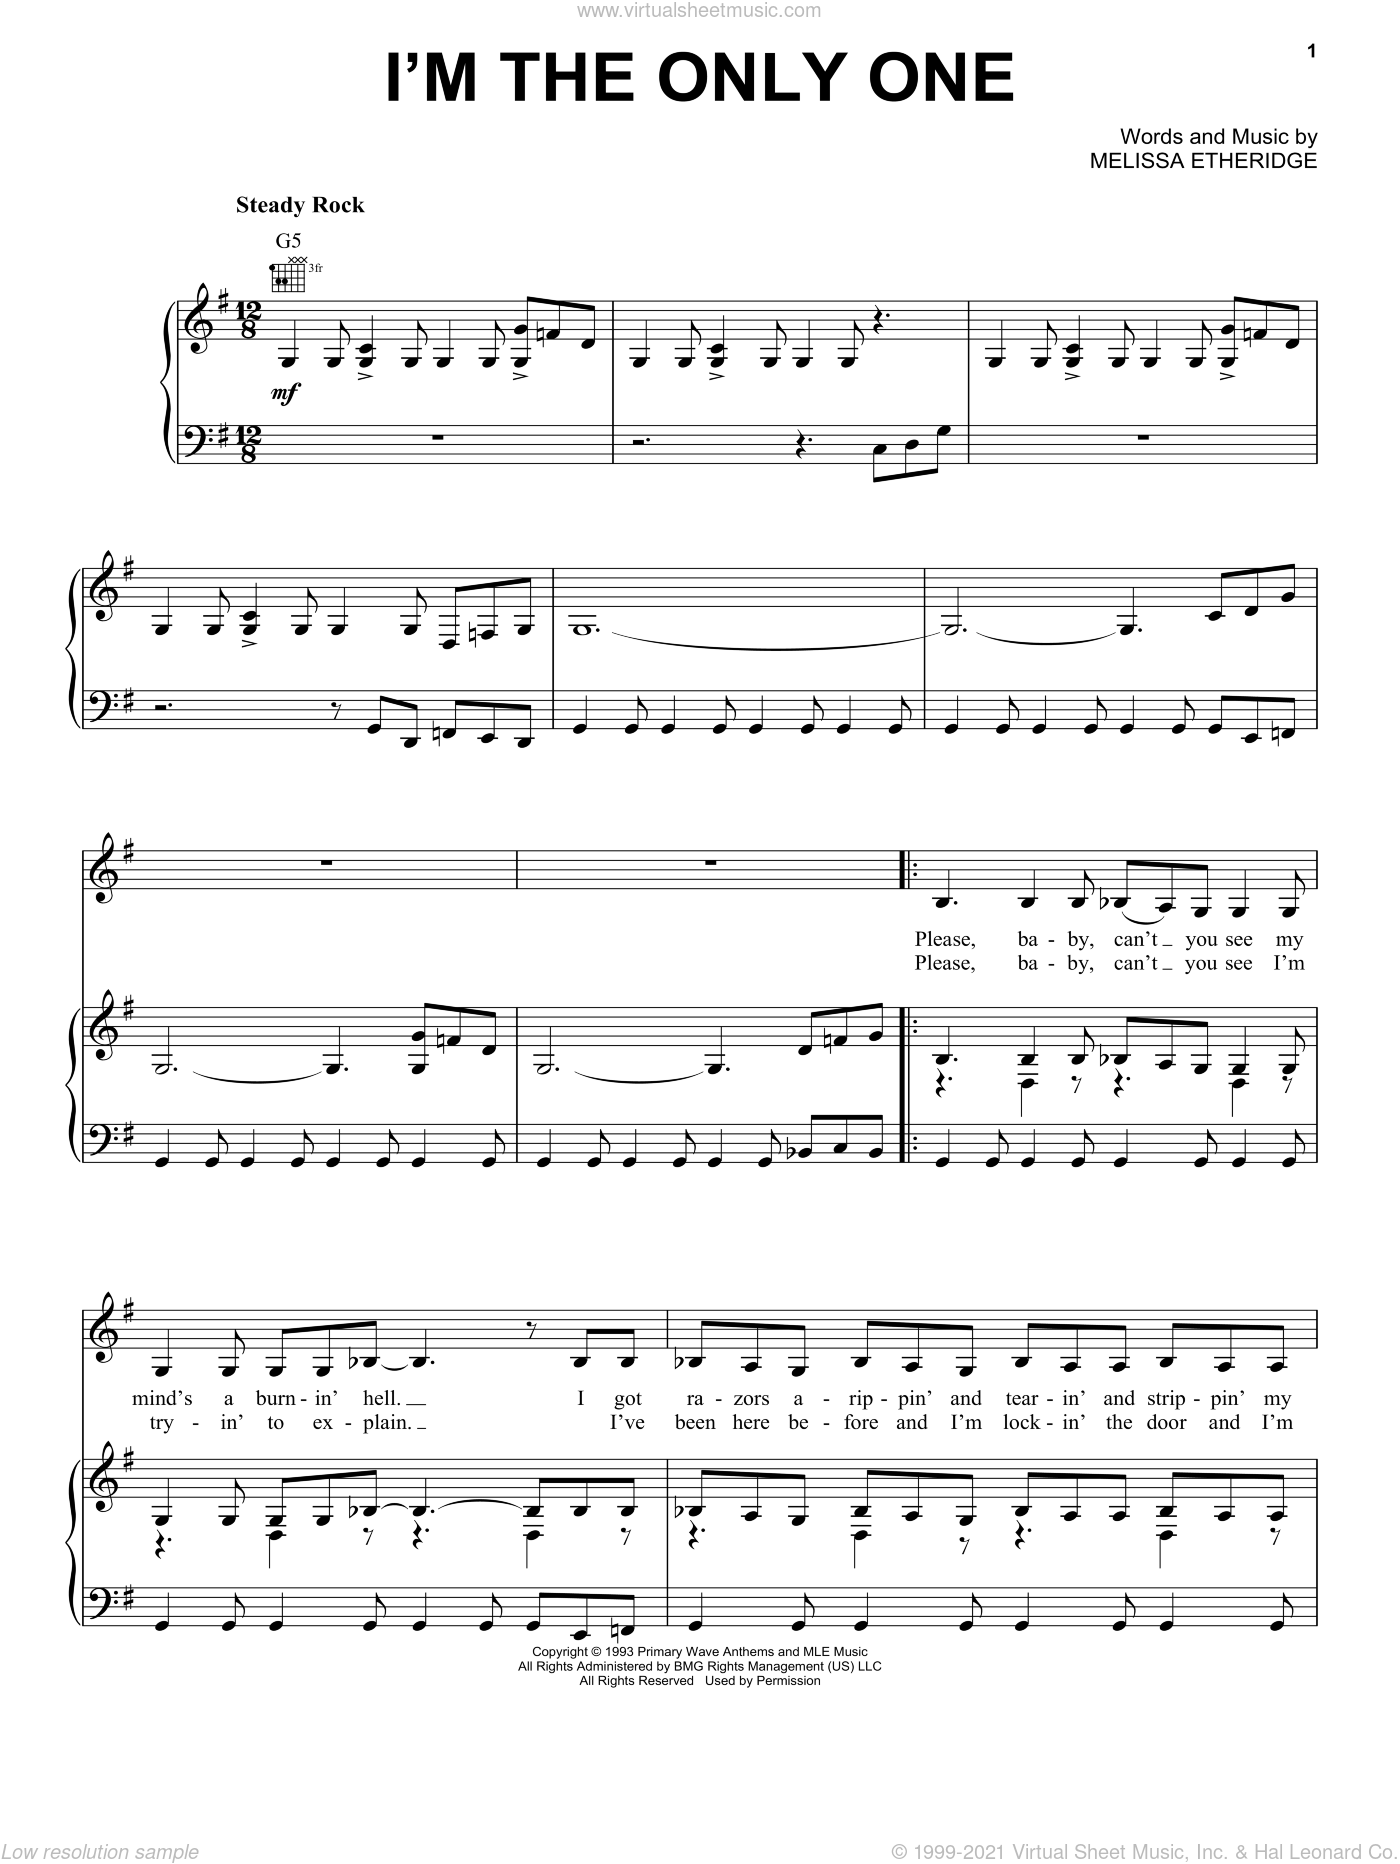 I'm The Only One sheet music for voice, piano or guitar by Melissa Etheridge. Score Image Preview.